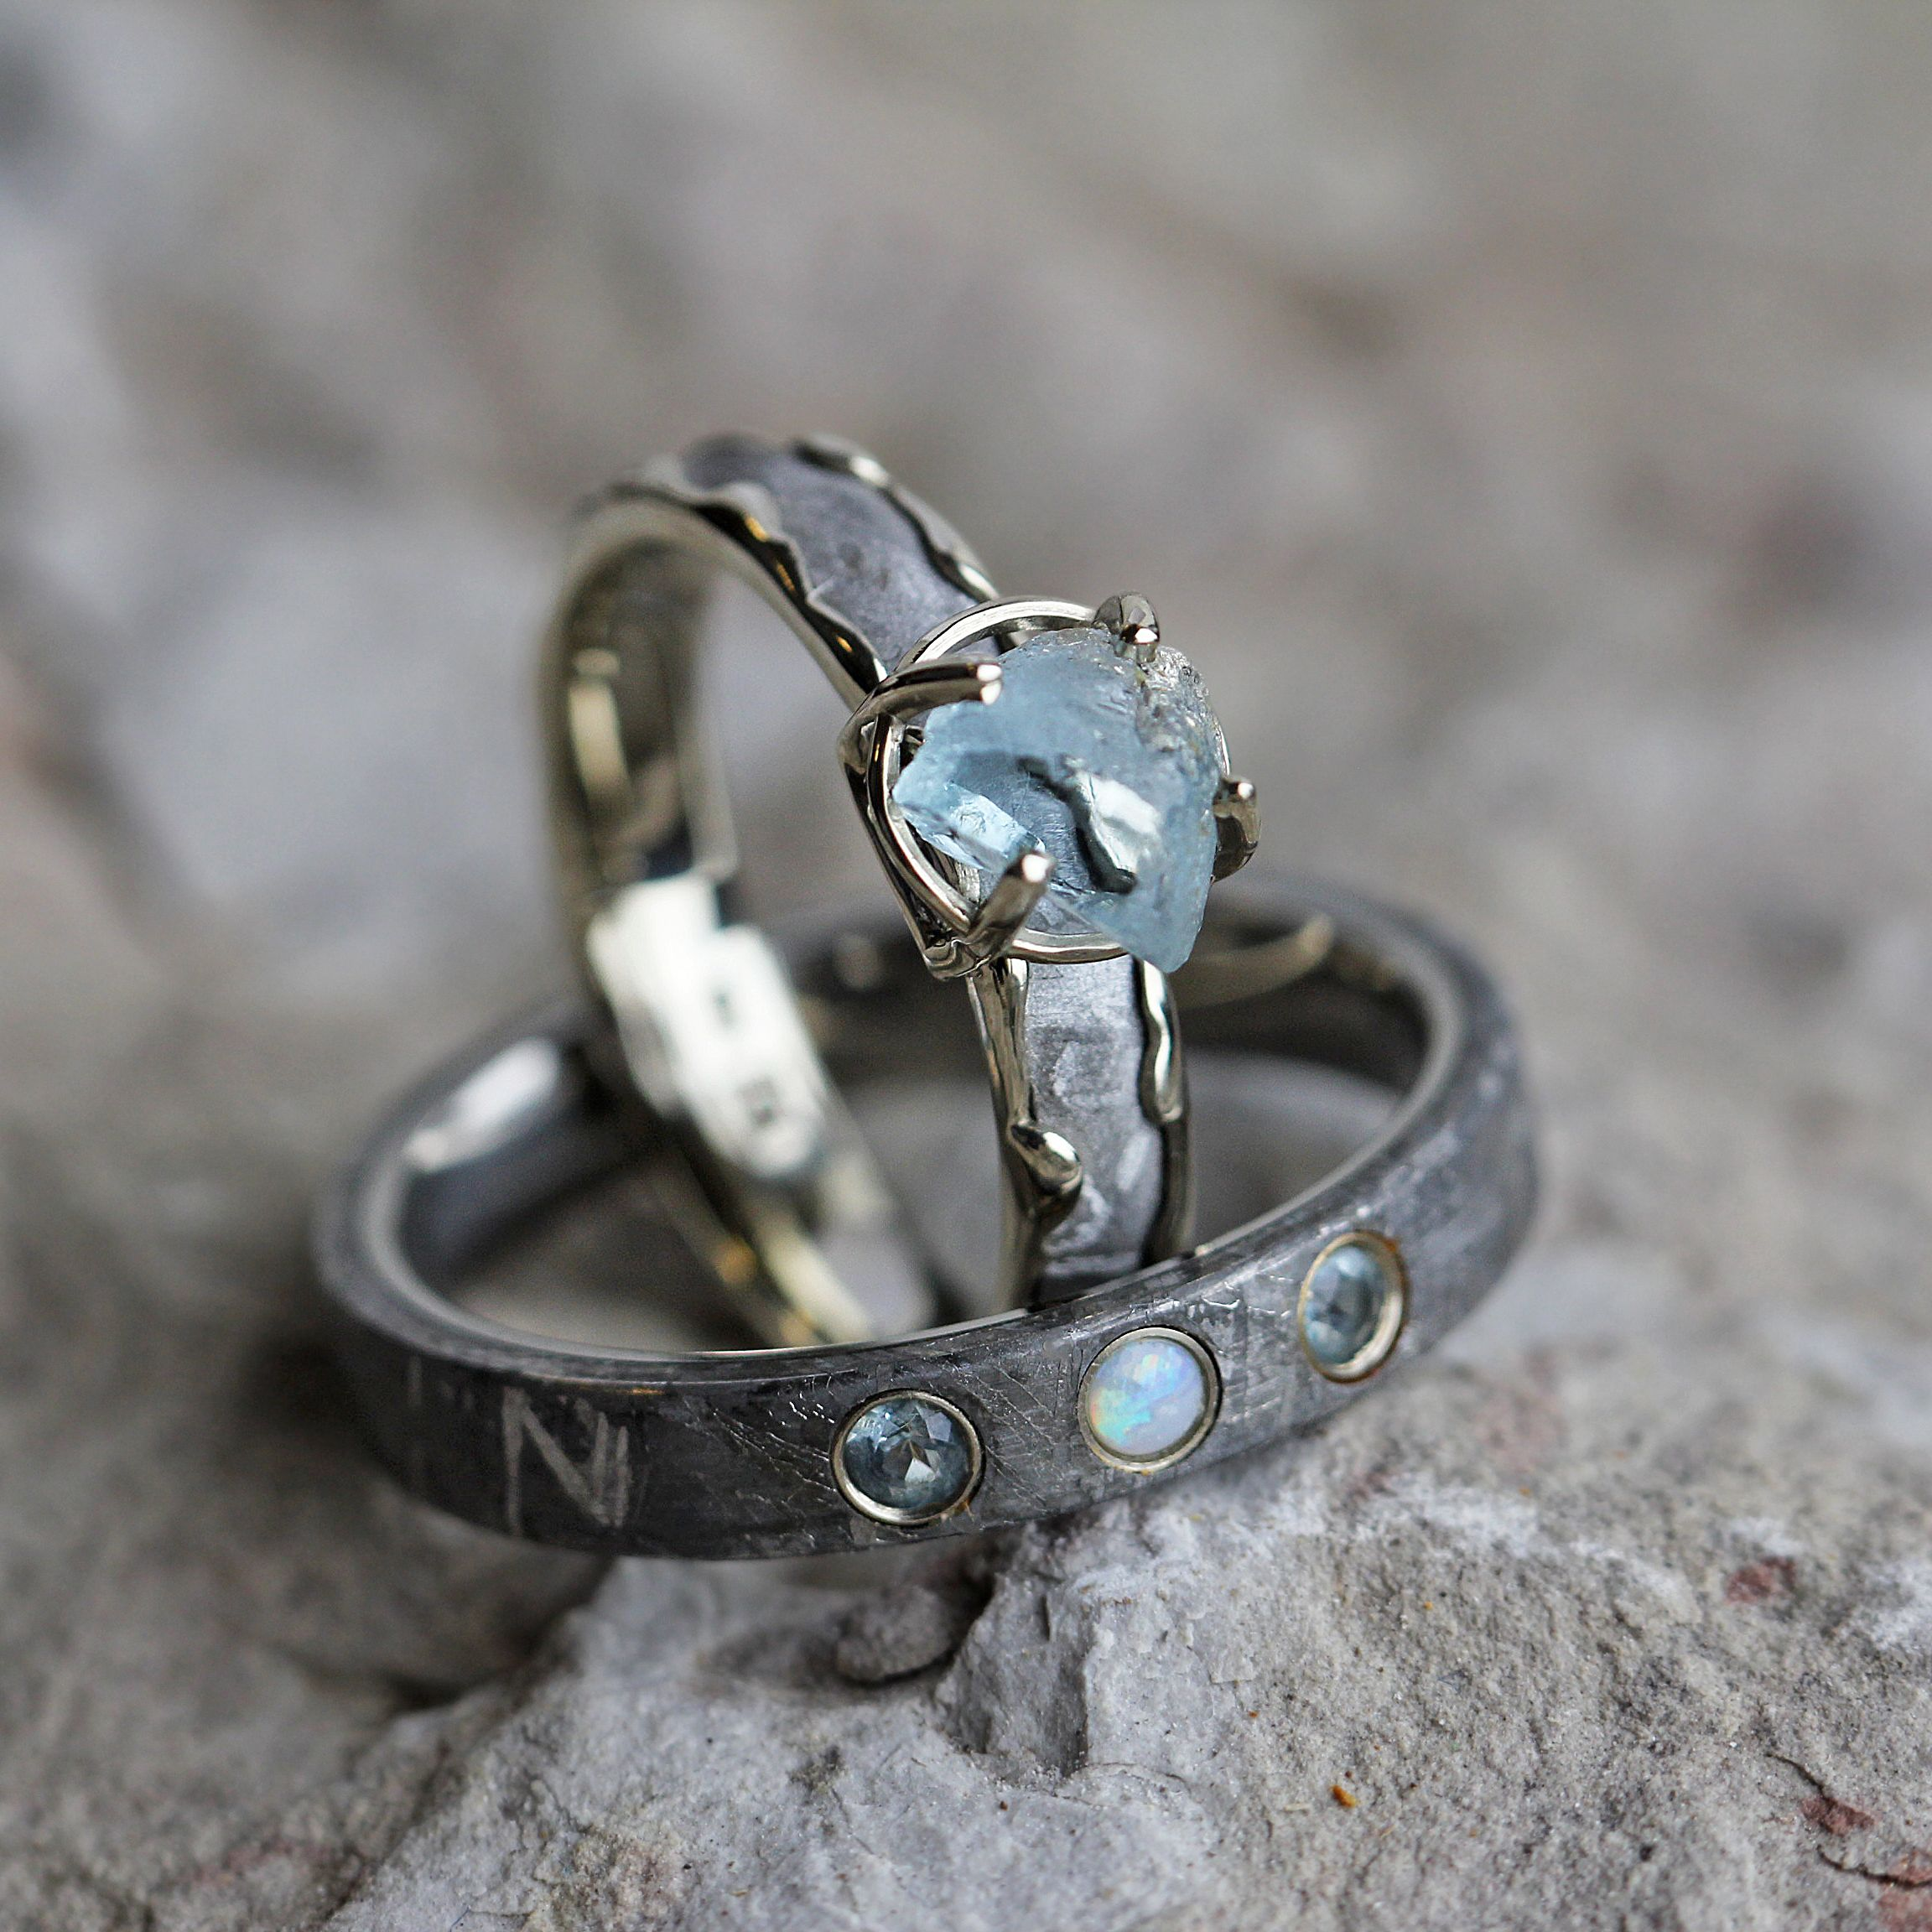 art rose white aquamarine marine cut rings ring edwardian diamond and detail antique gold aqua antiques wedding